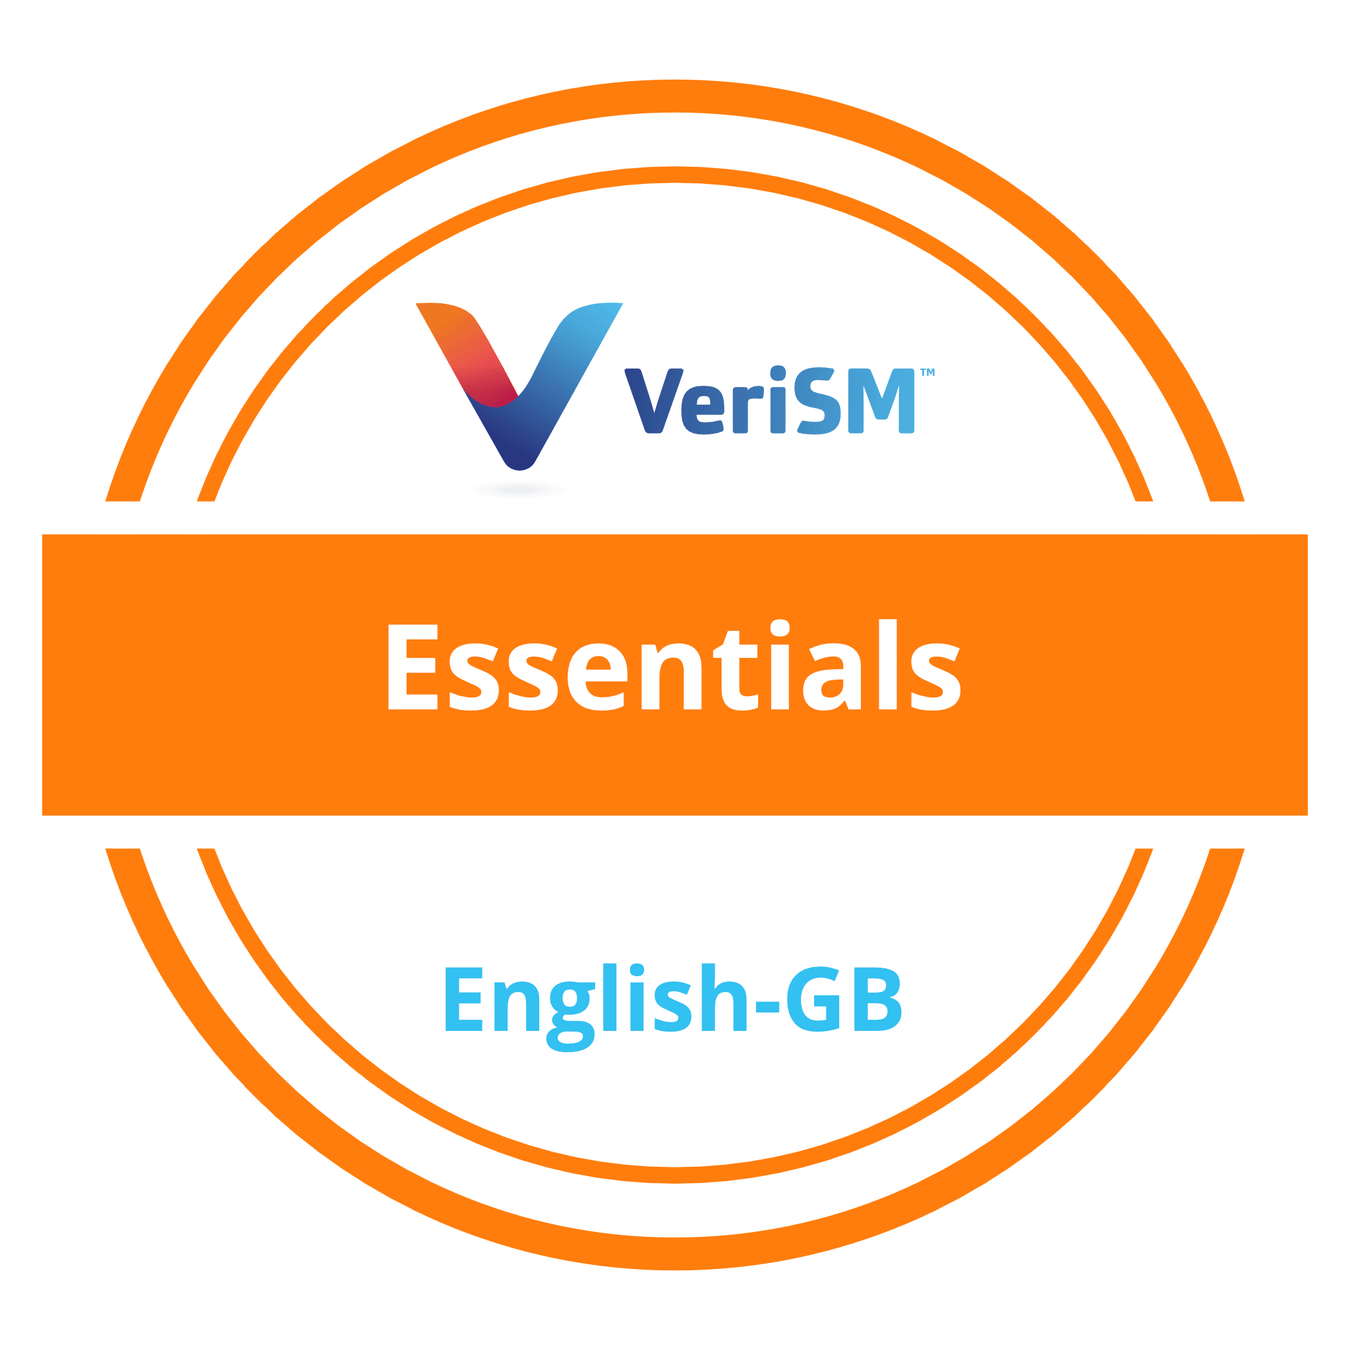 VeriSM Essentials Collection (en-gb)